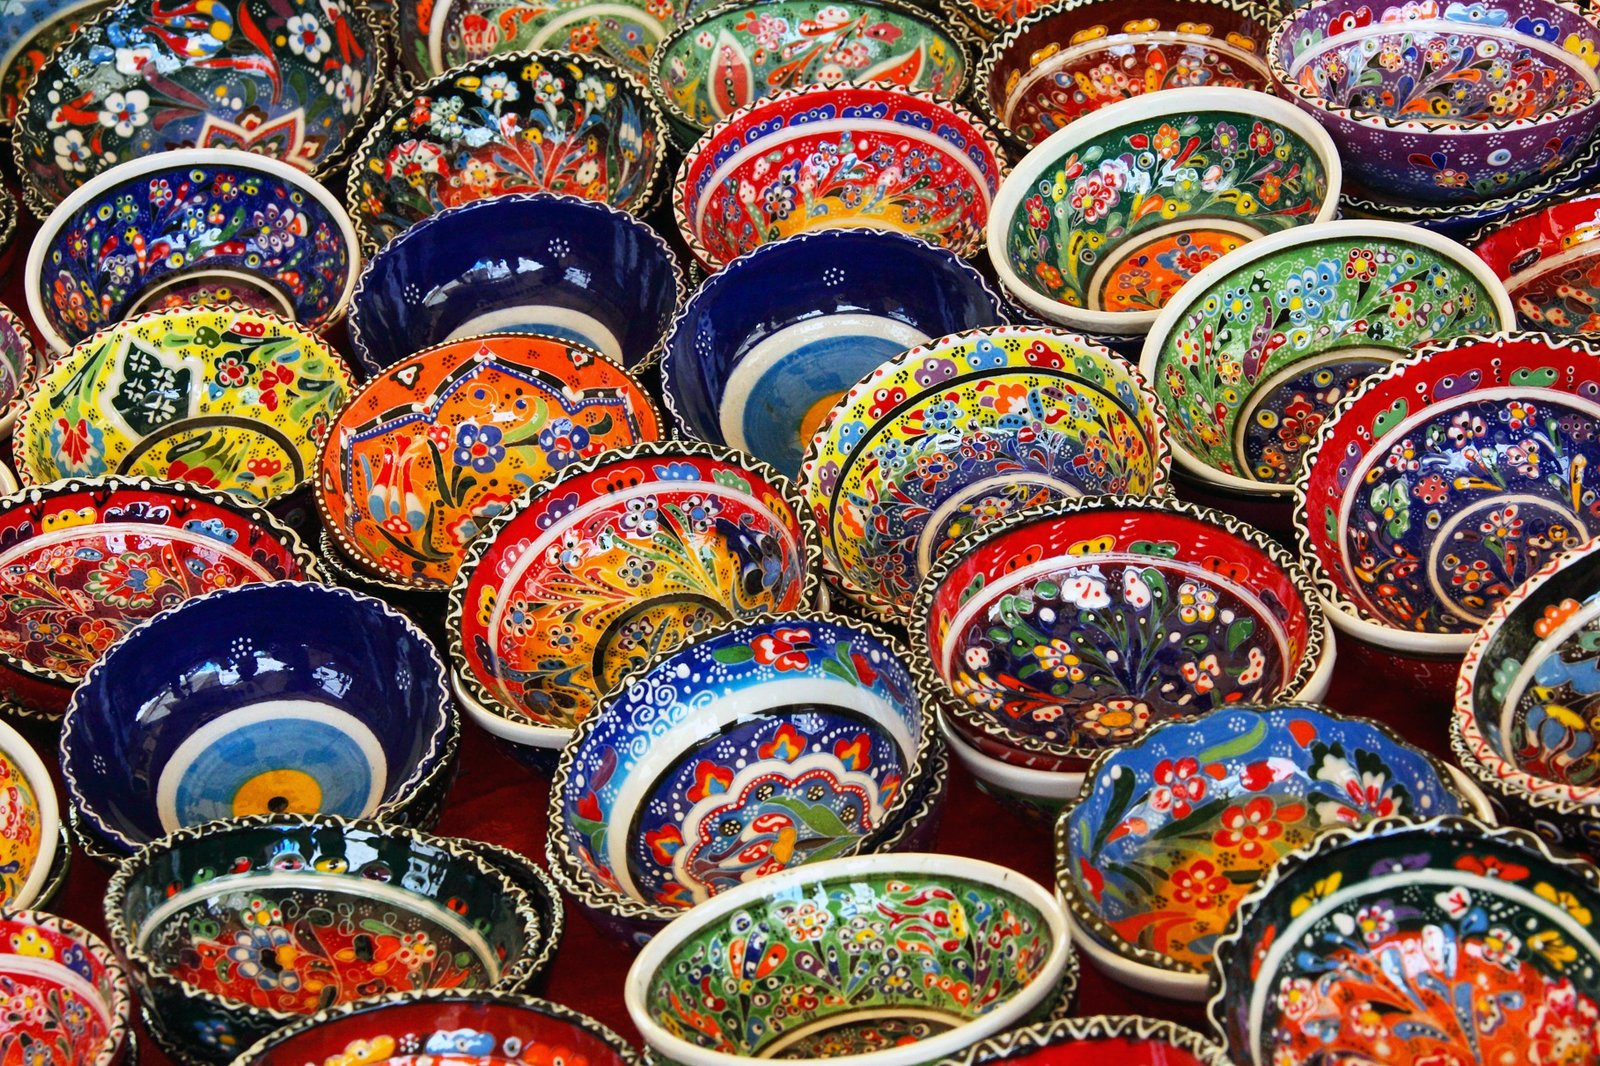 10 Great Things to Buy at Istanbul's Grand Bazaar - Istanbul